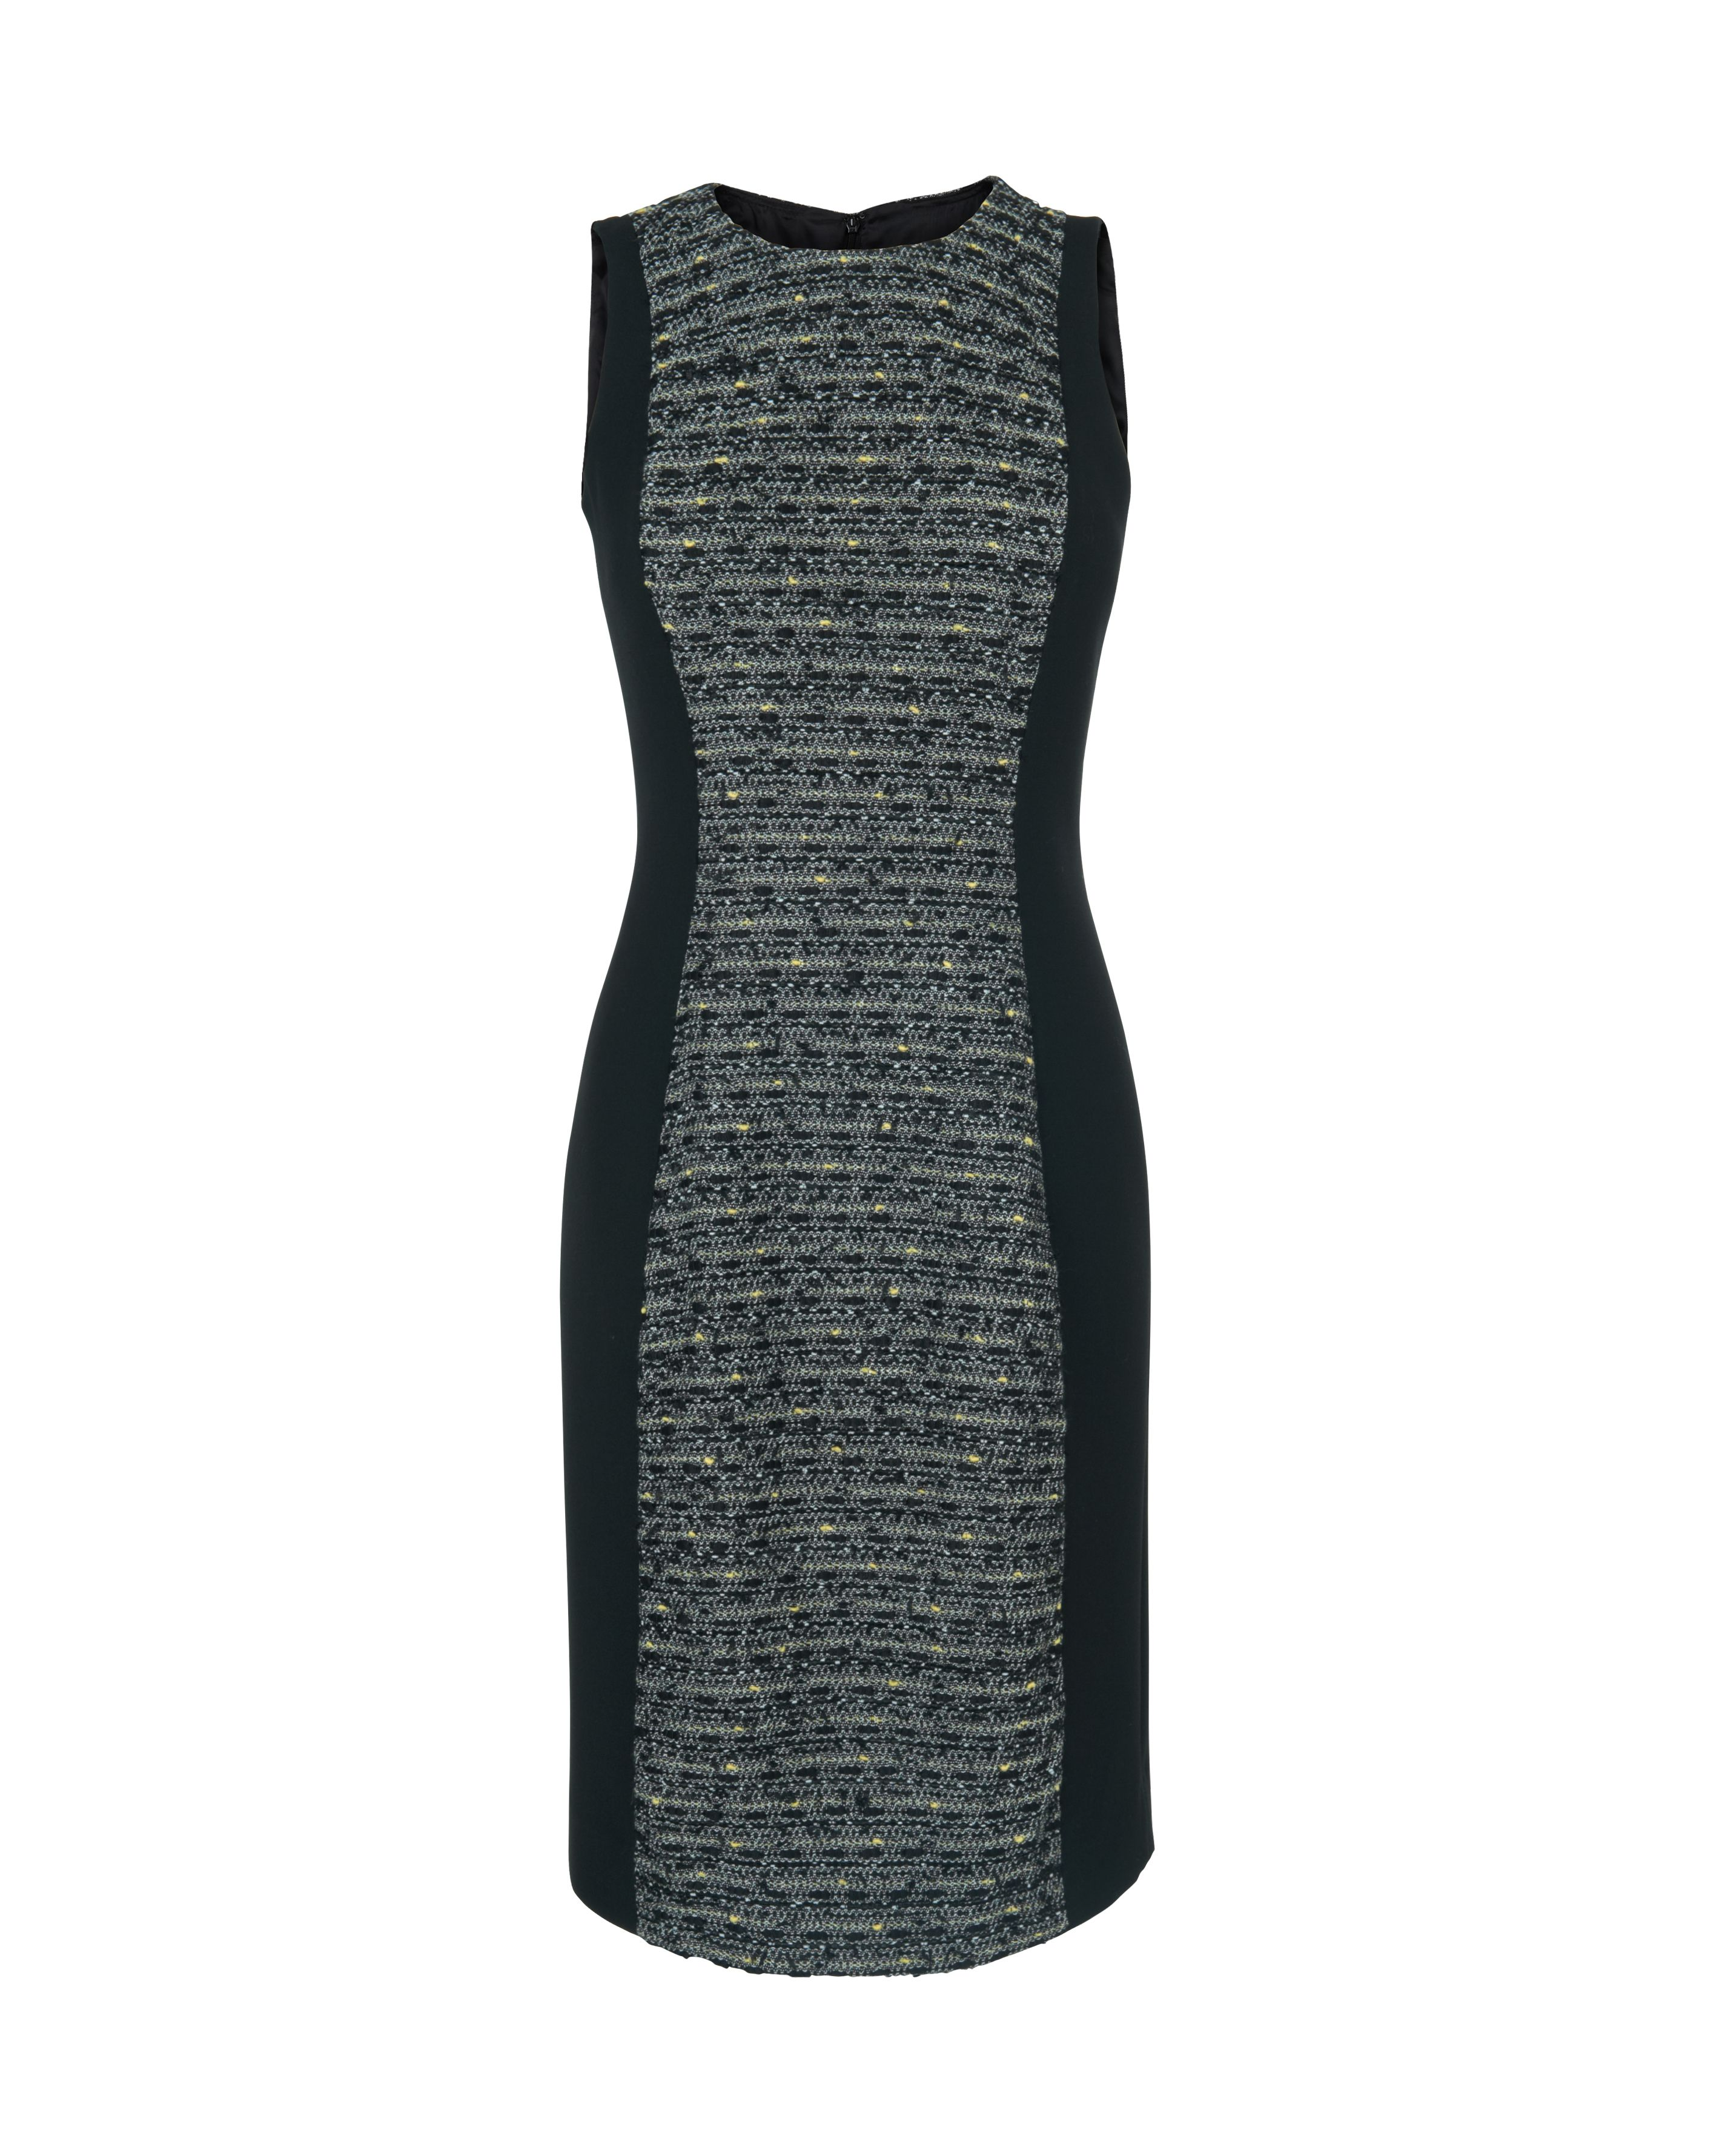 Linton tweed sleeveless dress